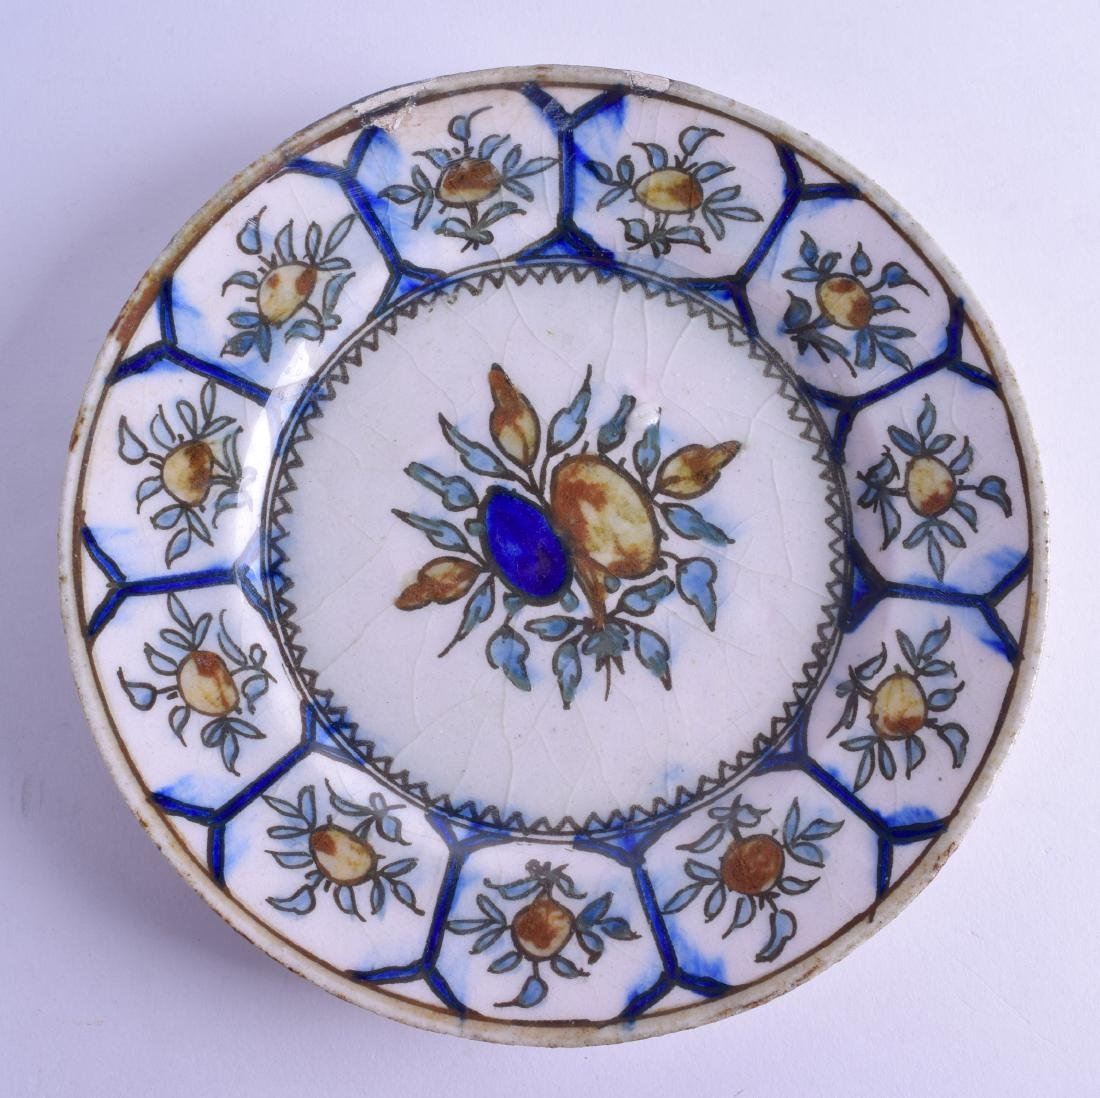 A 19TH/20TH CENTURY PERSIAN QAJAR POTTERY DISH painted